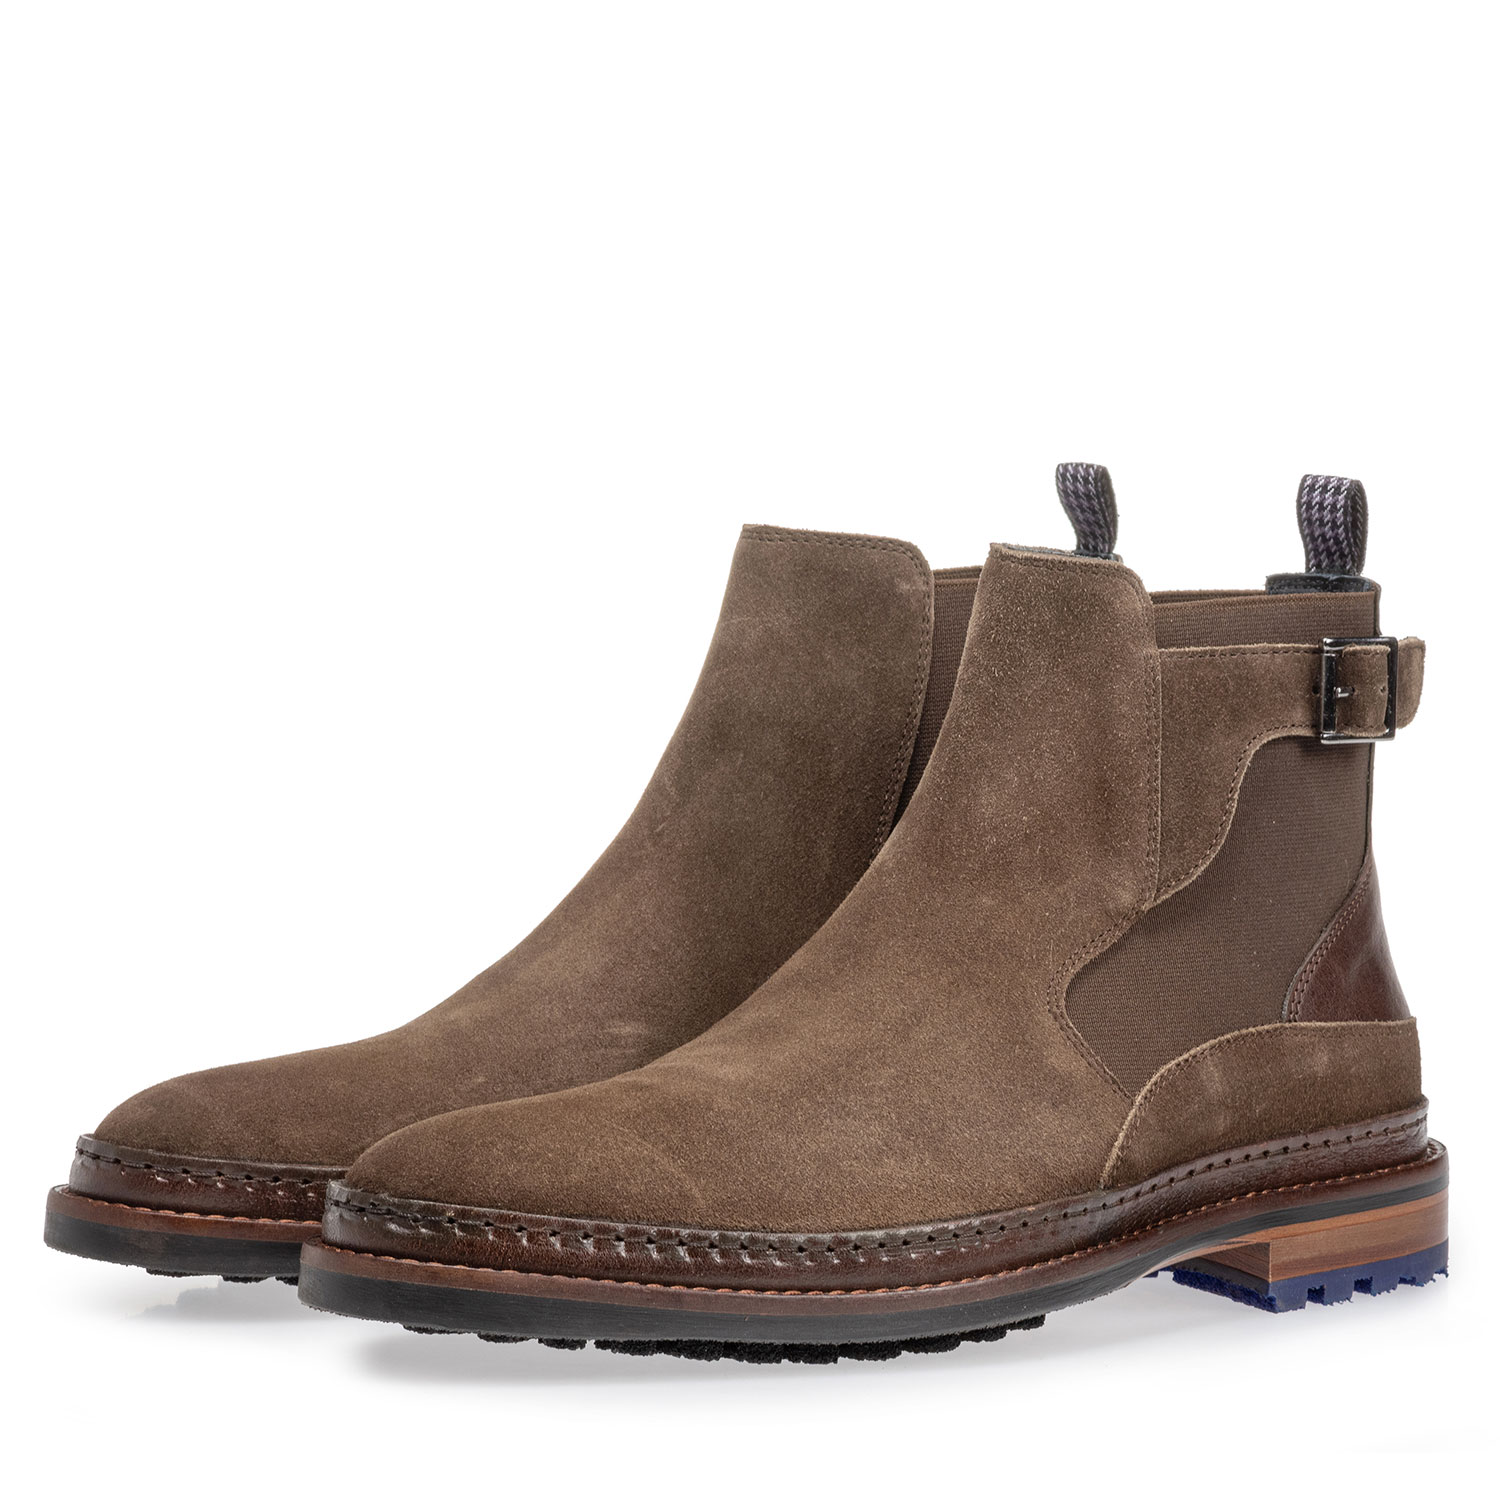 10529/07 - Chelsea boot suede leather dark taupe